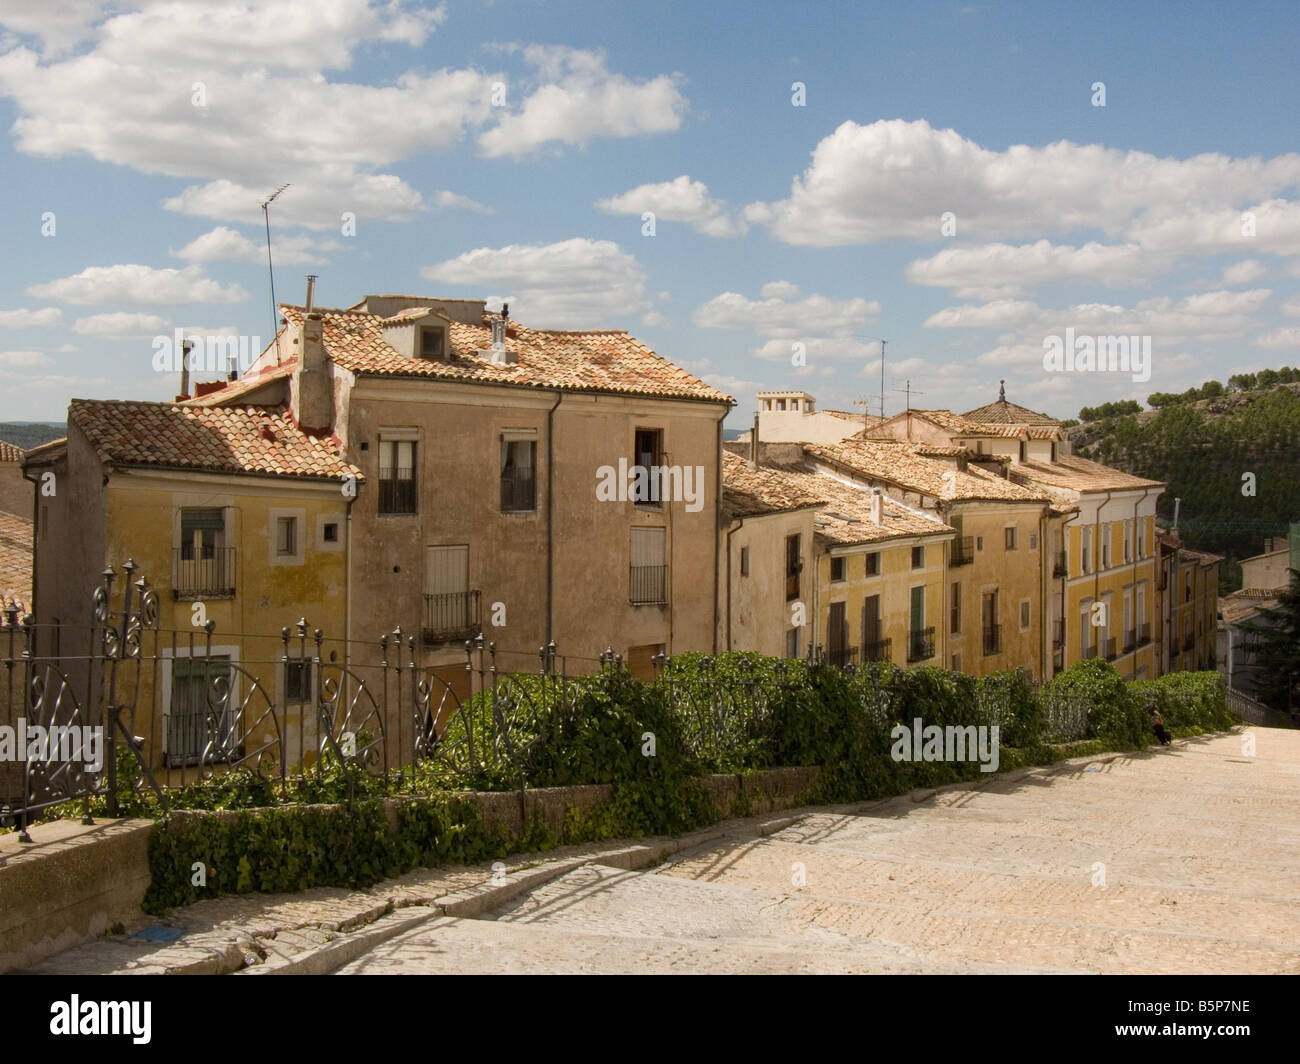 A row of Houses in the Spanish City of Cuenca, La Mancha, Spain - Stock Image